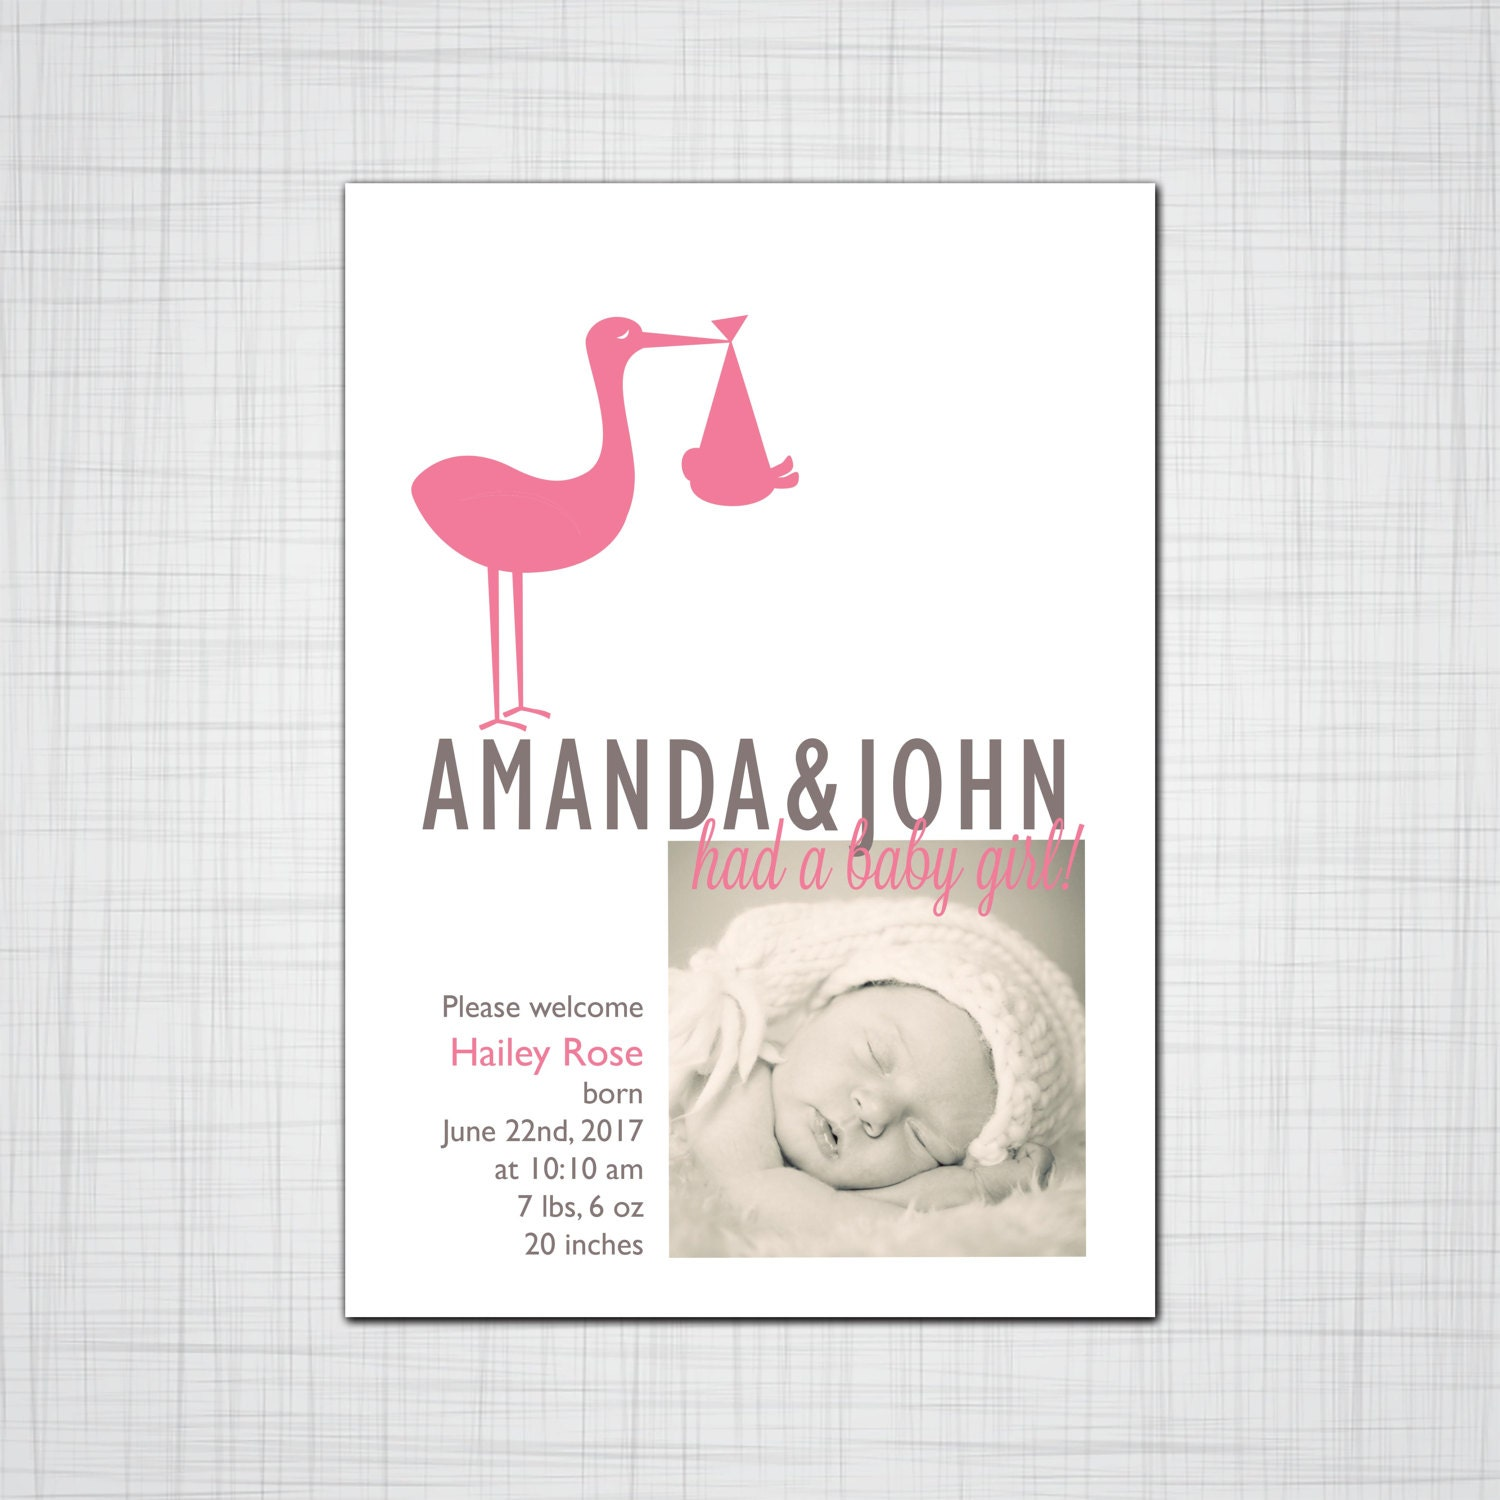 Stork Baby Shower Invitation Stork with a Baby Bundle – Stork Birth Announcement